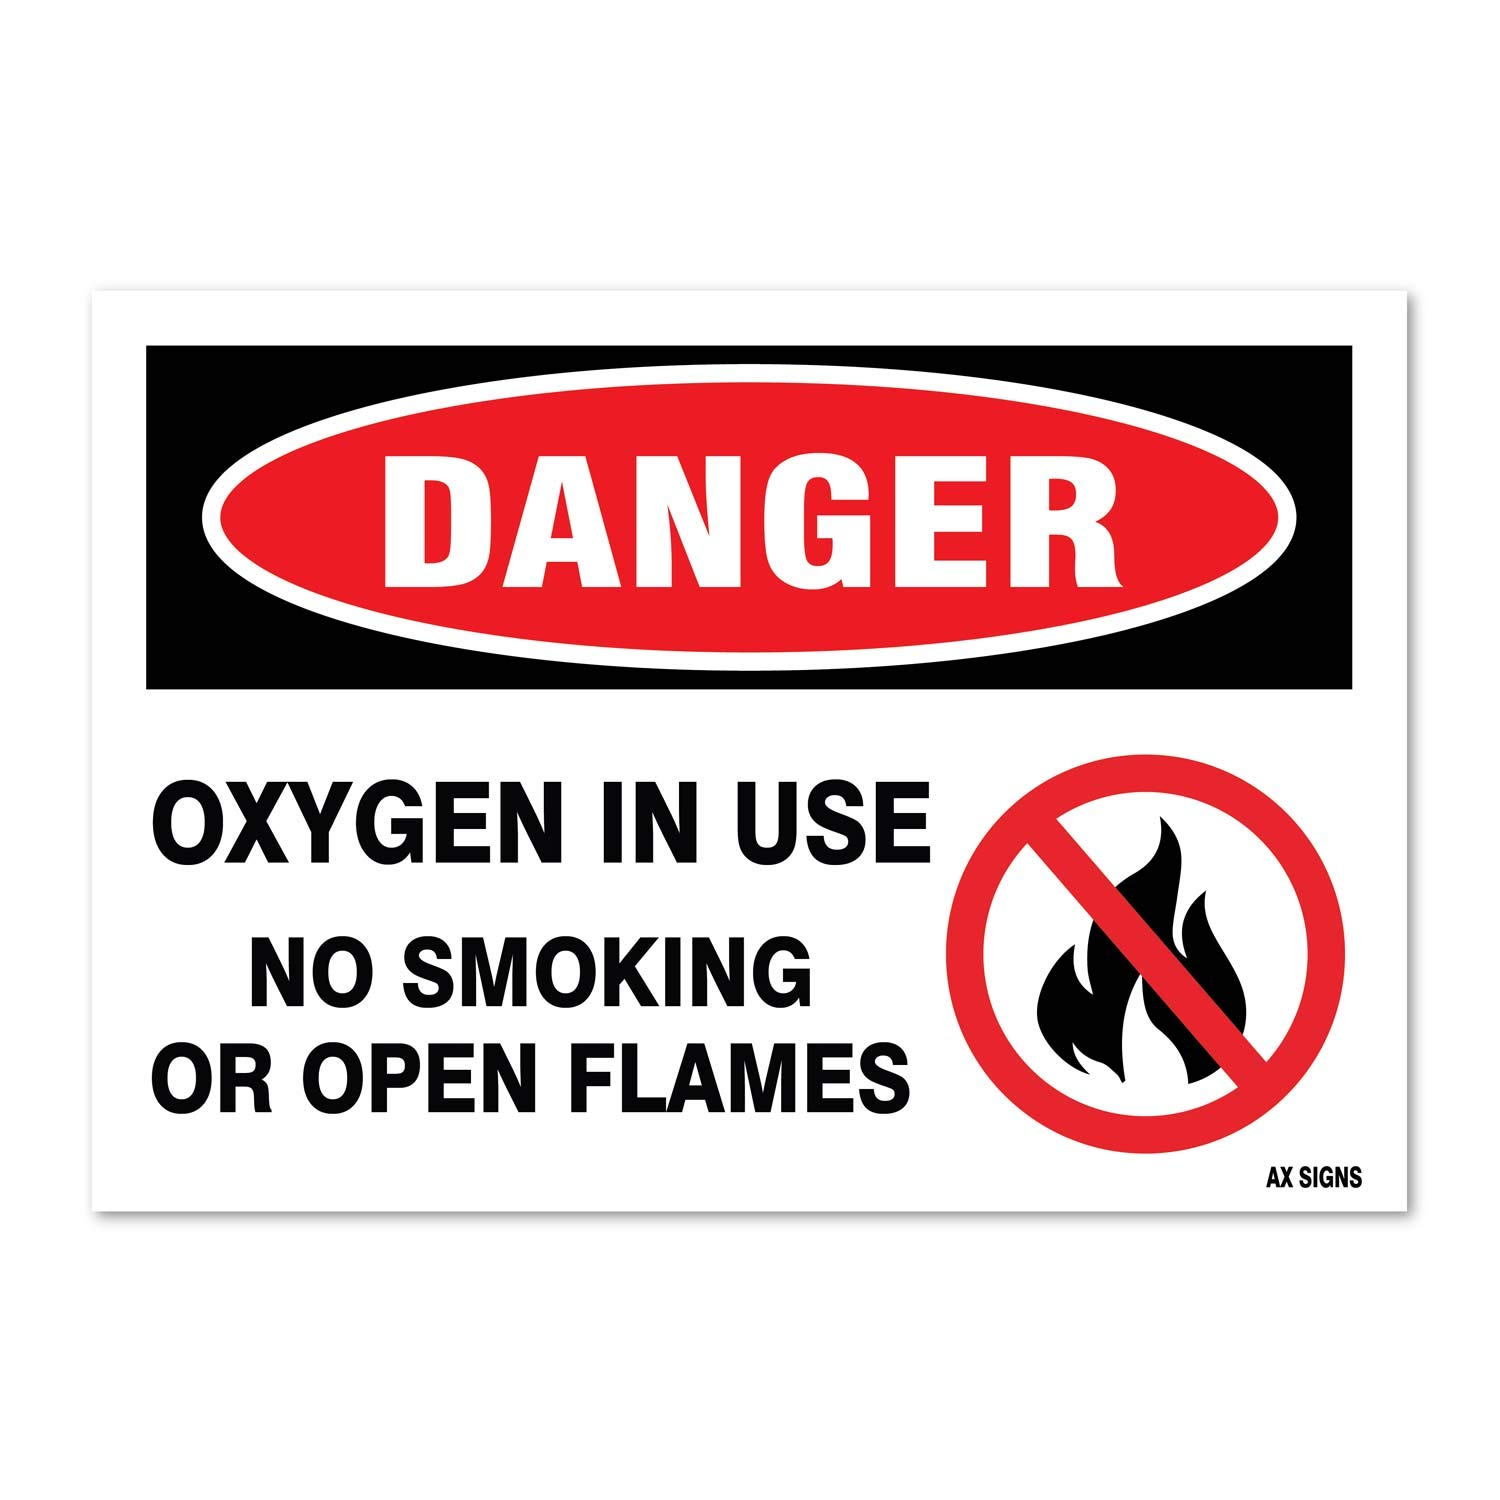 "Danger: Oxygen in Use No Smoking, 3.5"" high x 5"" wide, Black/Red on White, Self Adhesive Vinyl Sticker, Indoor and Outdoor Use, Rust Free, UV Protected, Waterproof"